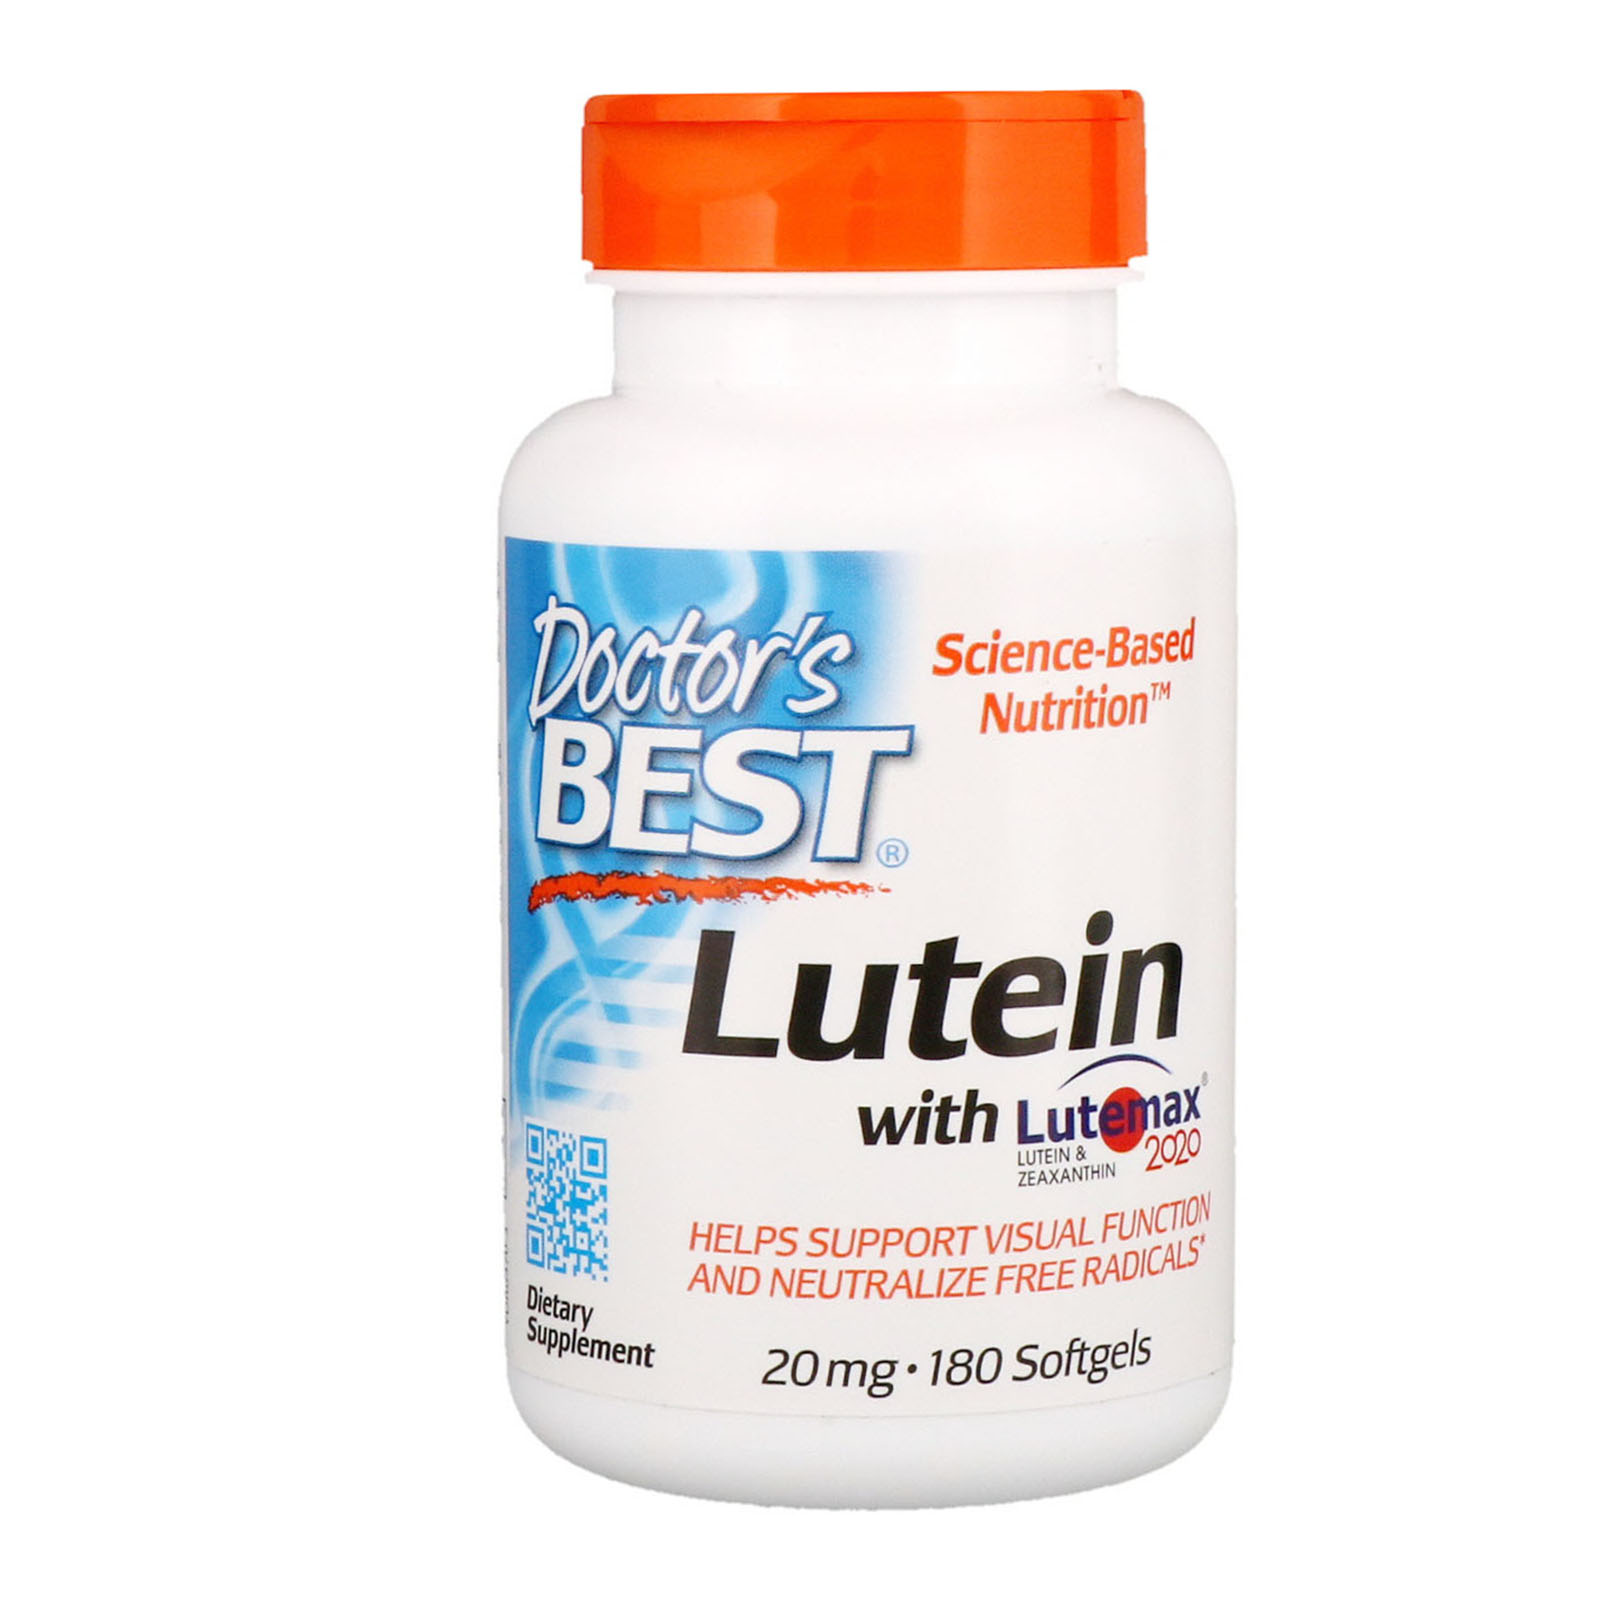 Best Collagen Pills 2020 Doctor's Best, Lutein With Lutemax 2020, 20 mg, 180 Softgels